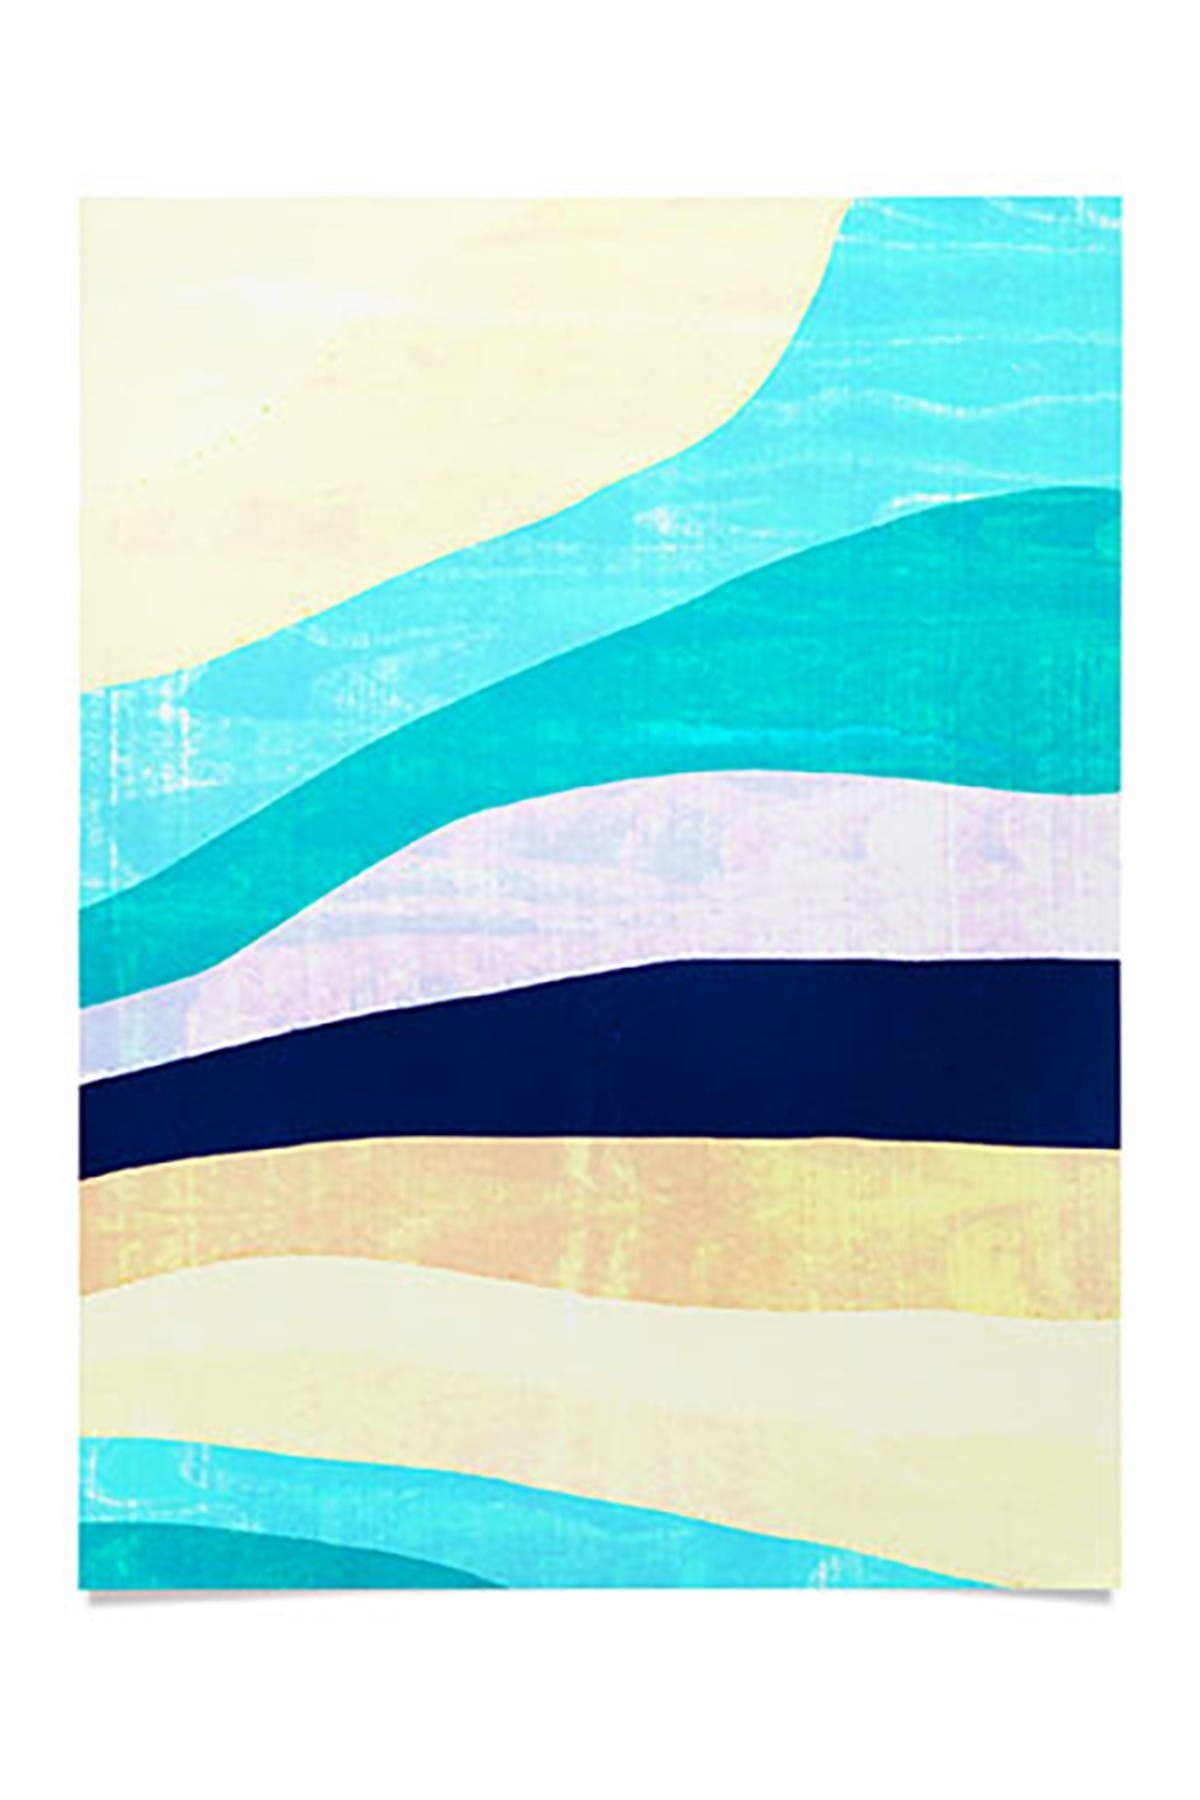 Image of Deny Designs SunshineCanteen White Sands and Waves Poster